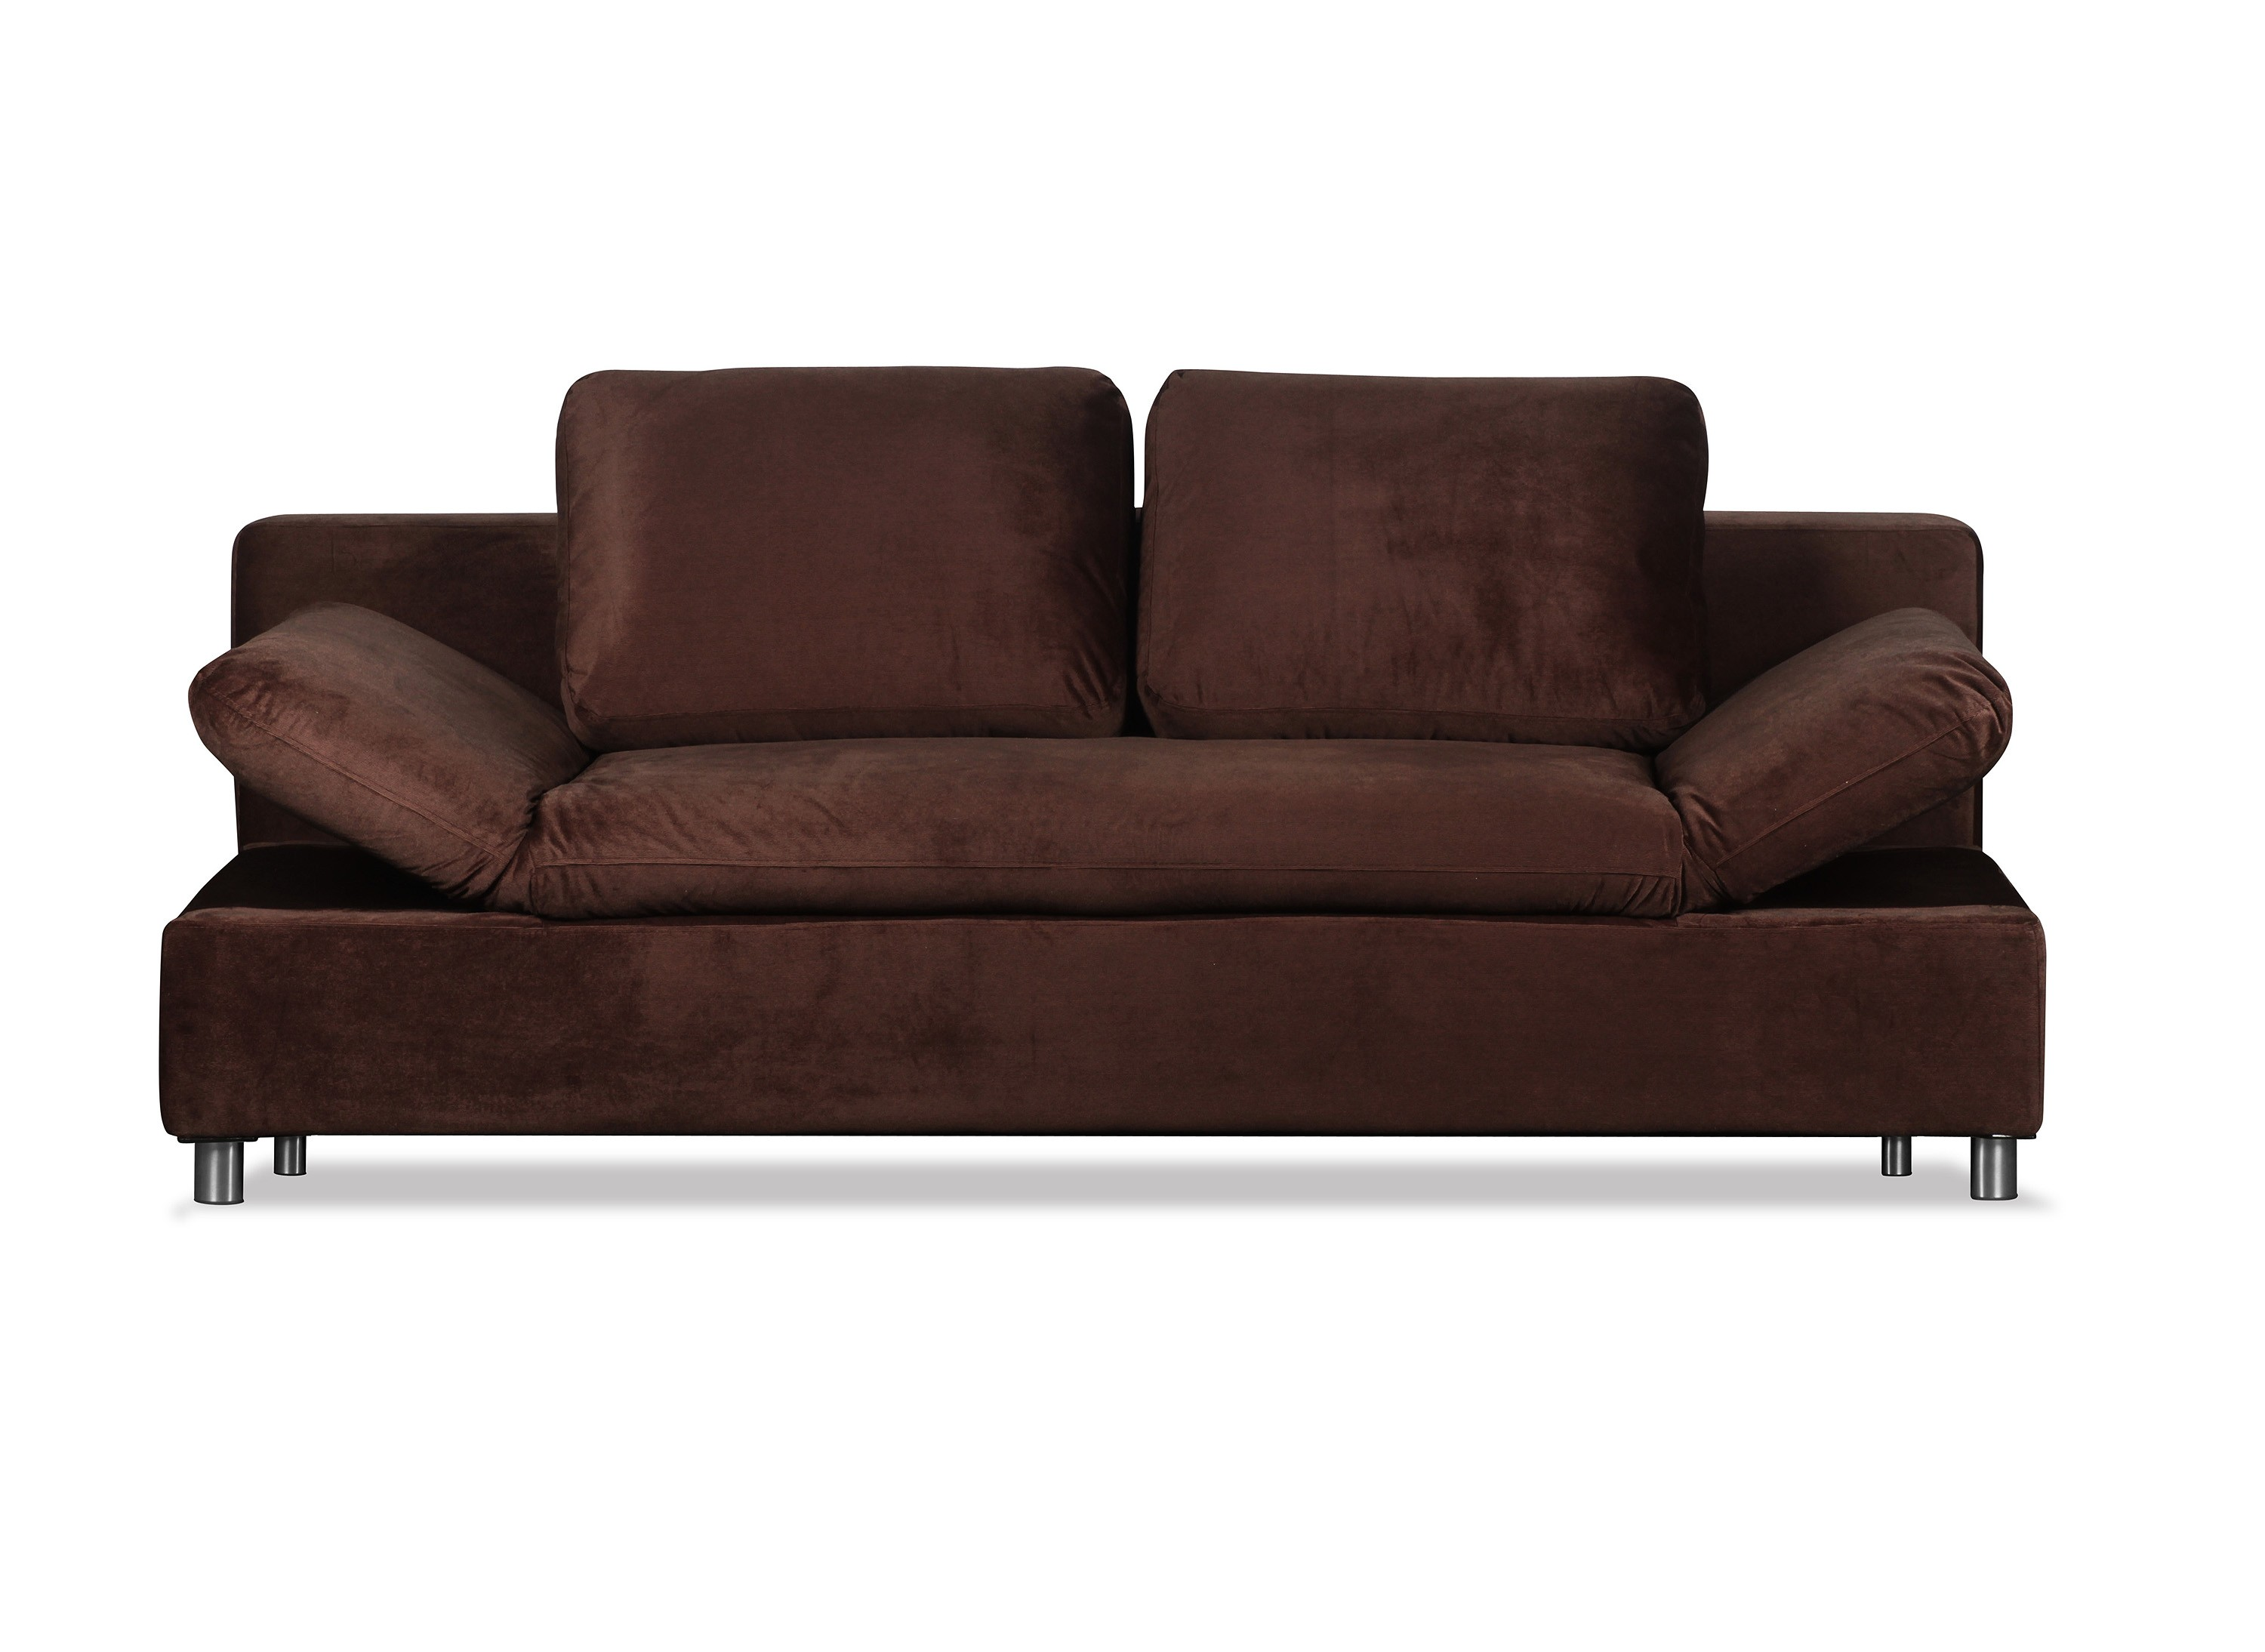 living room packages brisbane country rooms colors sofa bed front